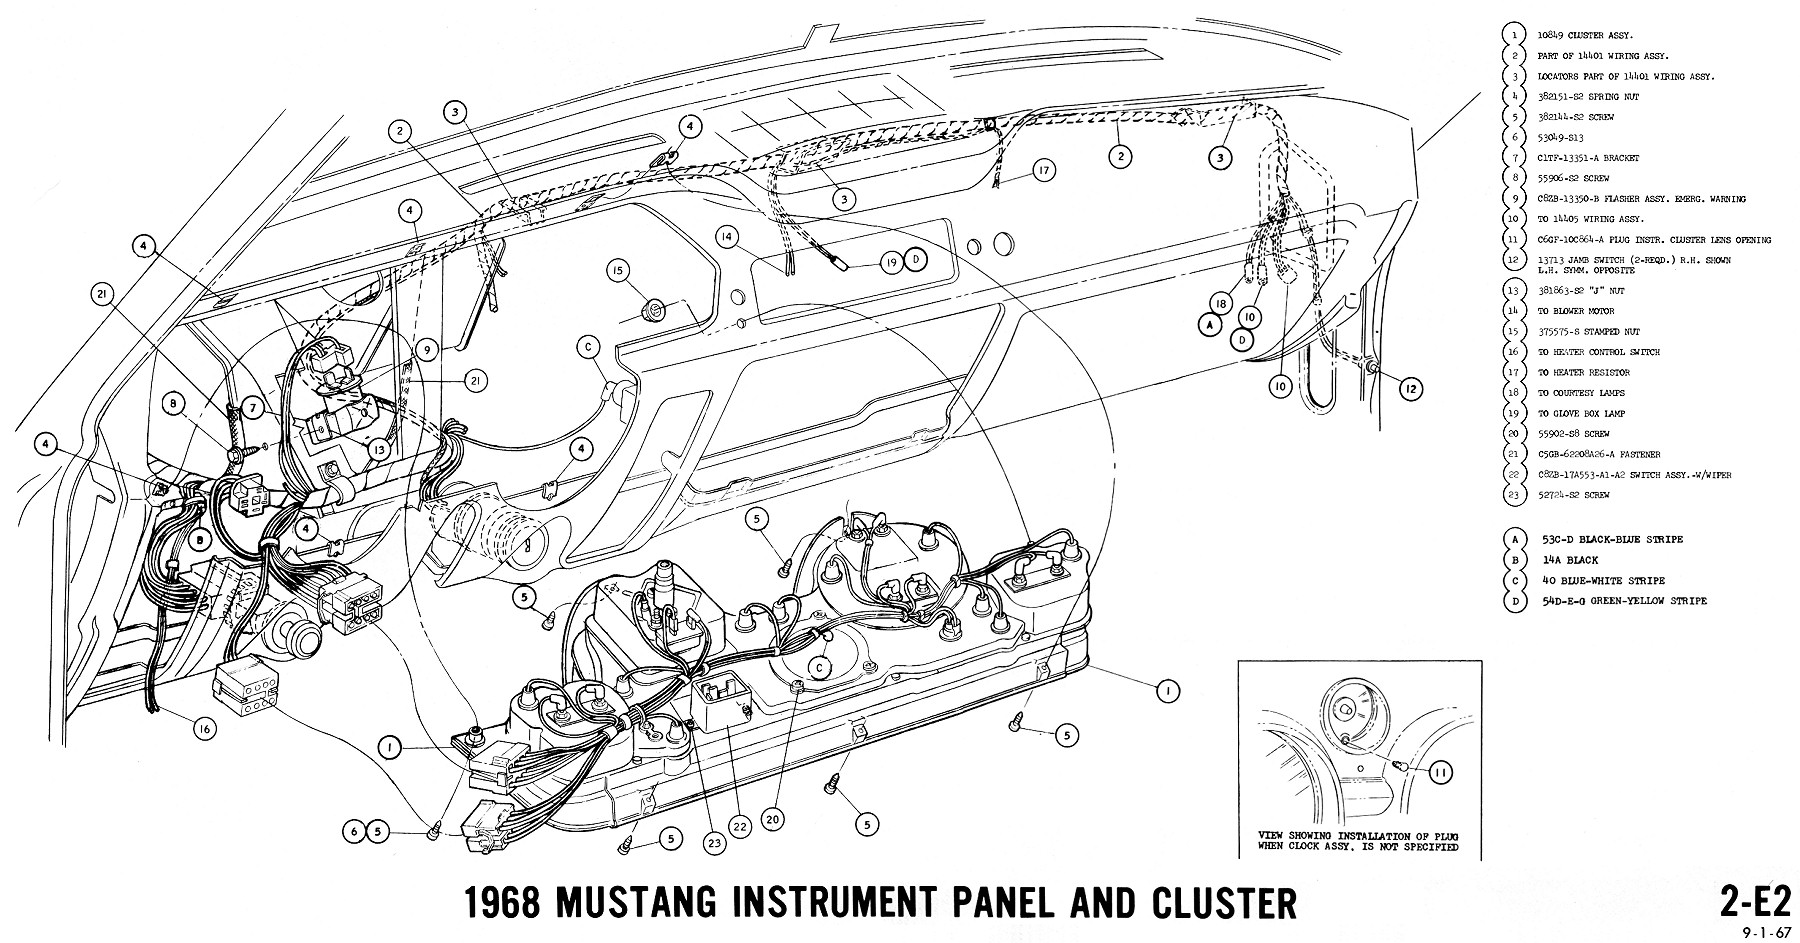 1968 Mustang Wiring Diagram Vacuum Schematics on ford mustang wiring harness